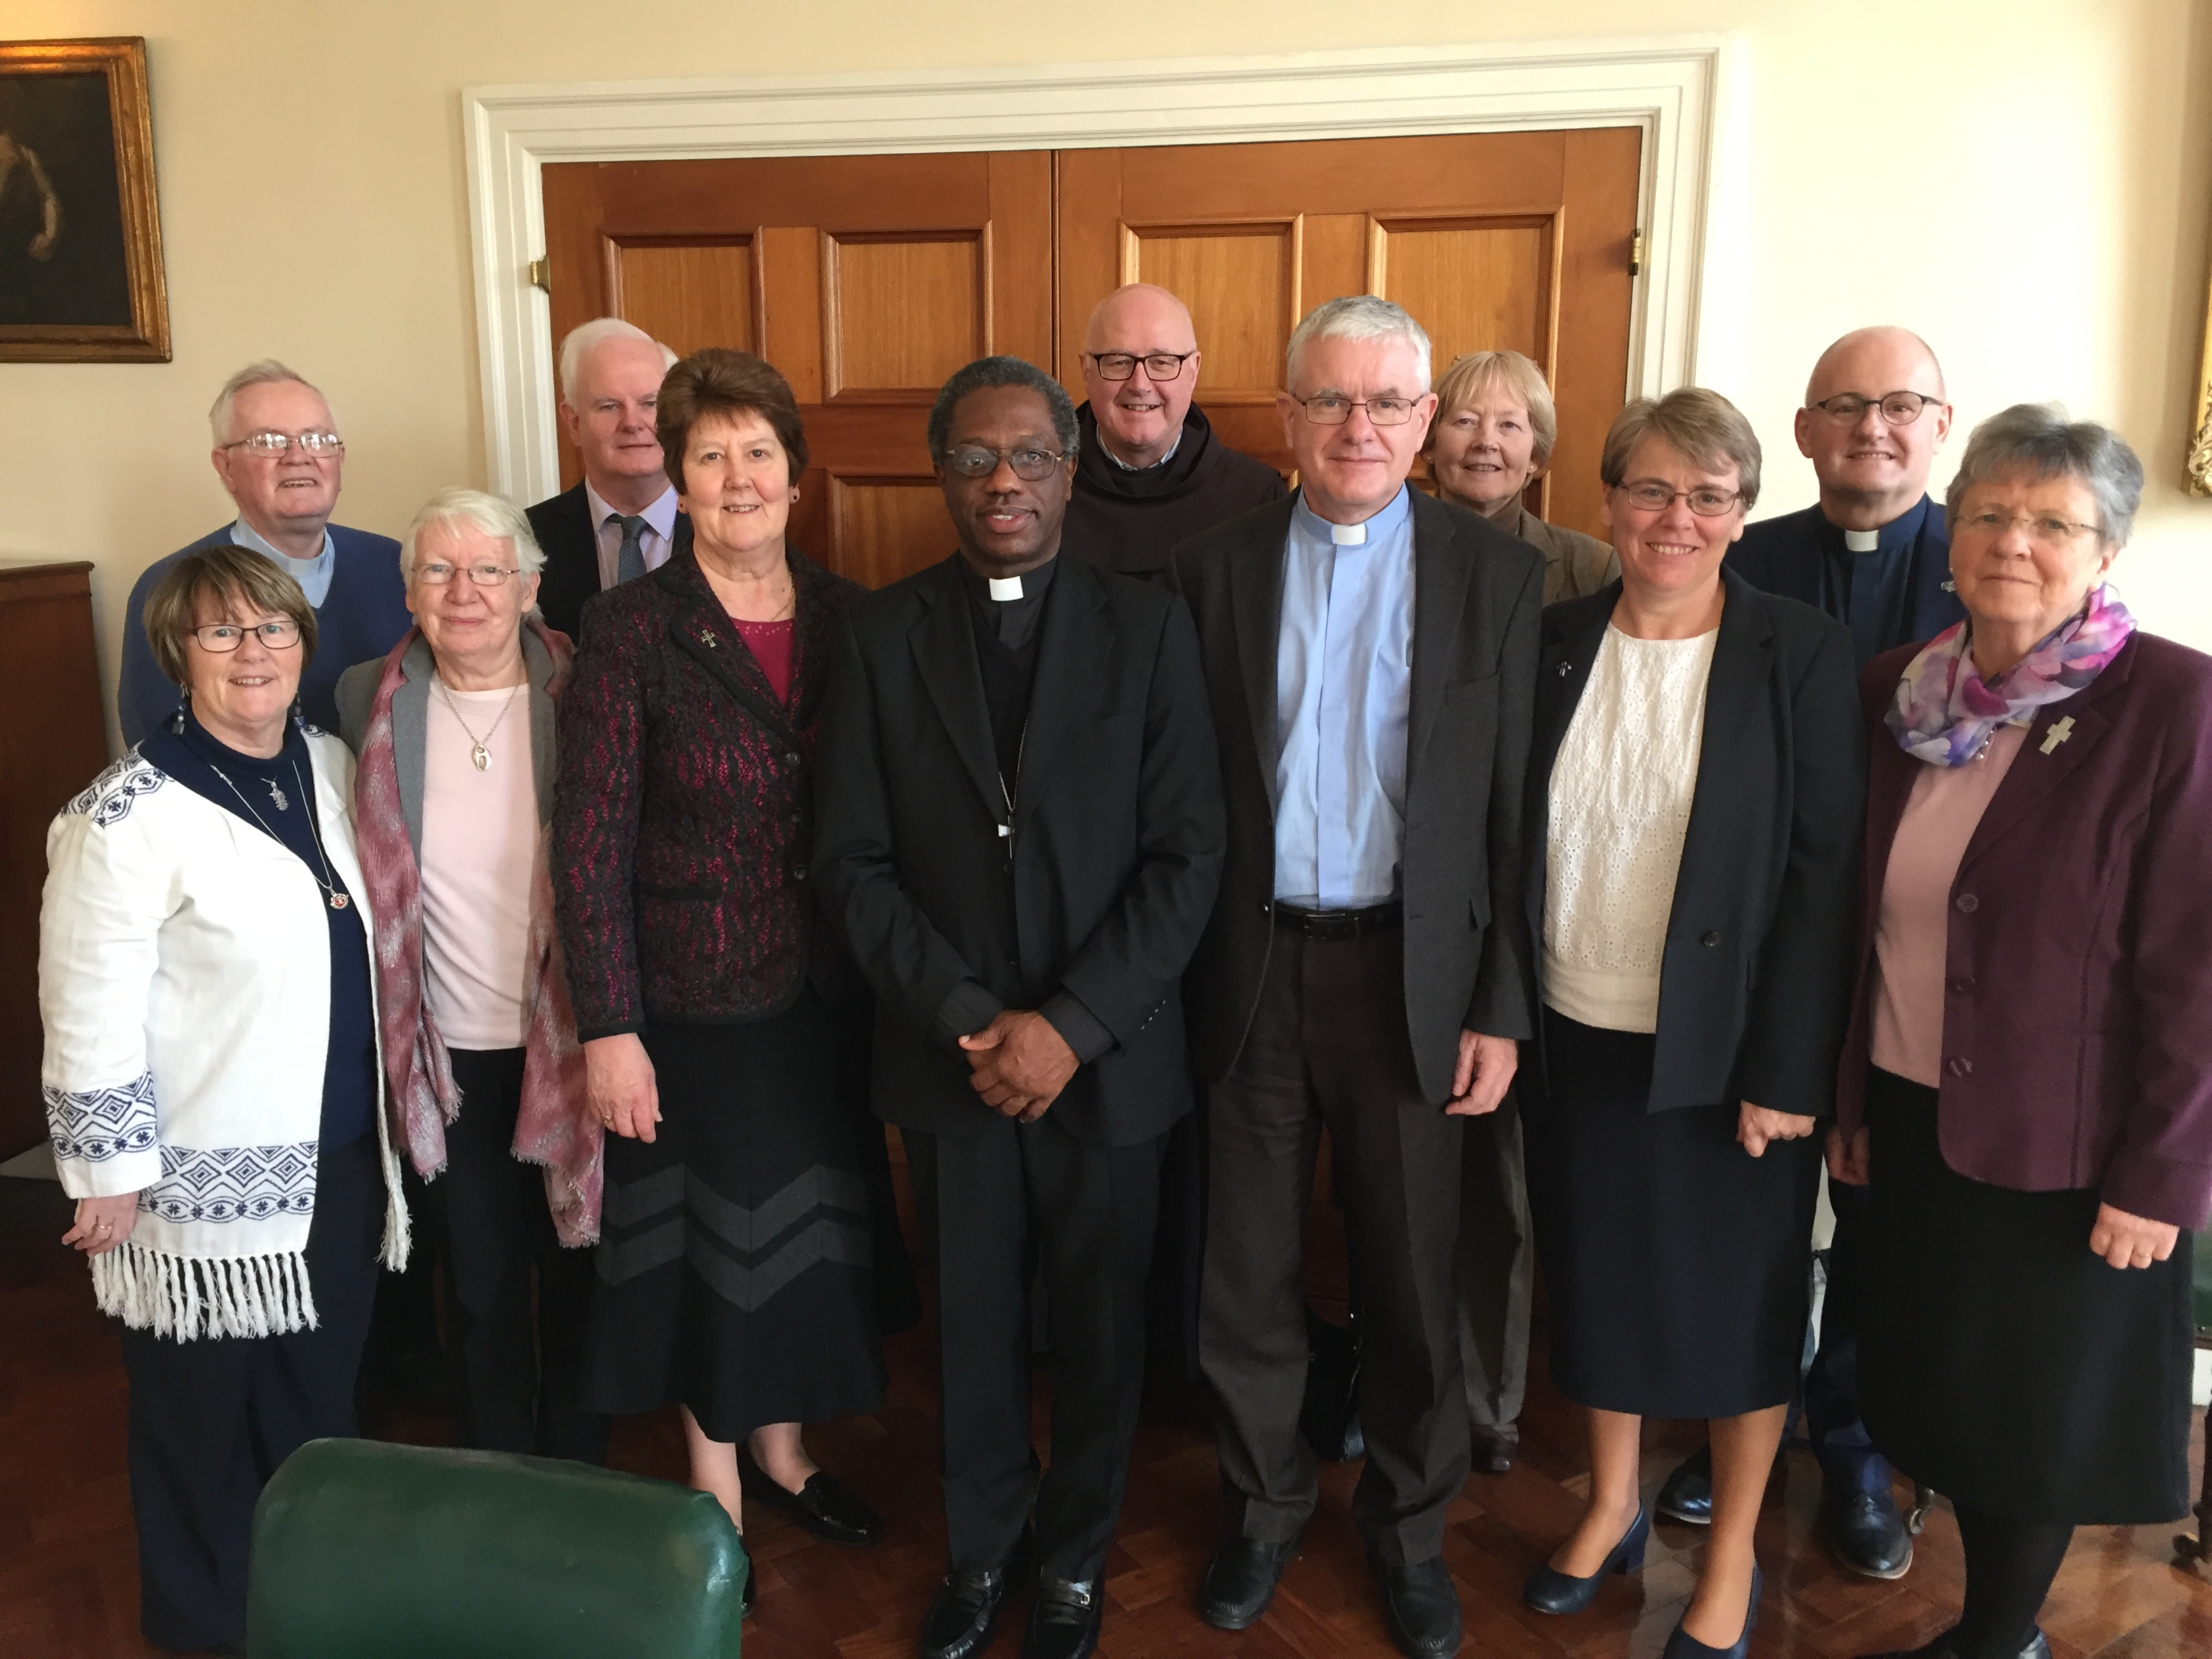 Meeting the Apostolic Nuncio